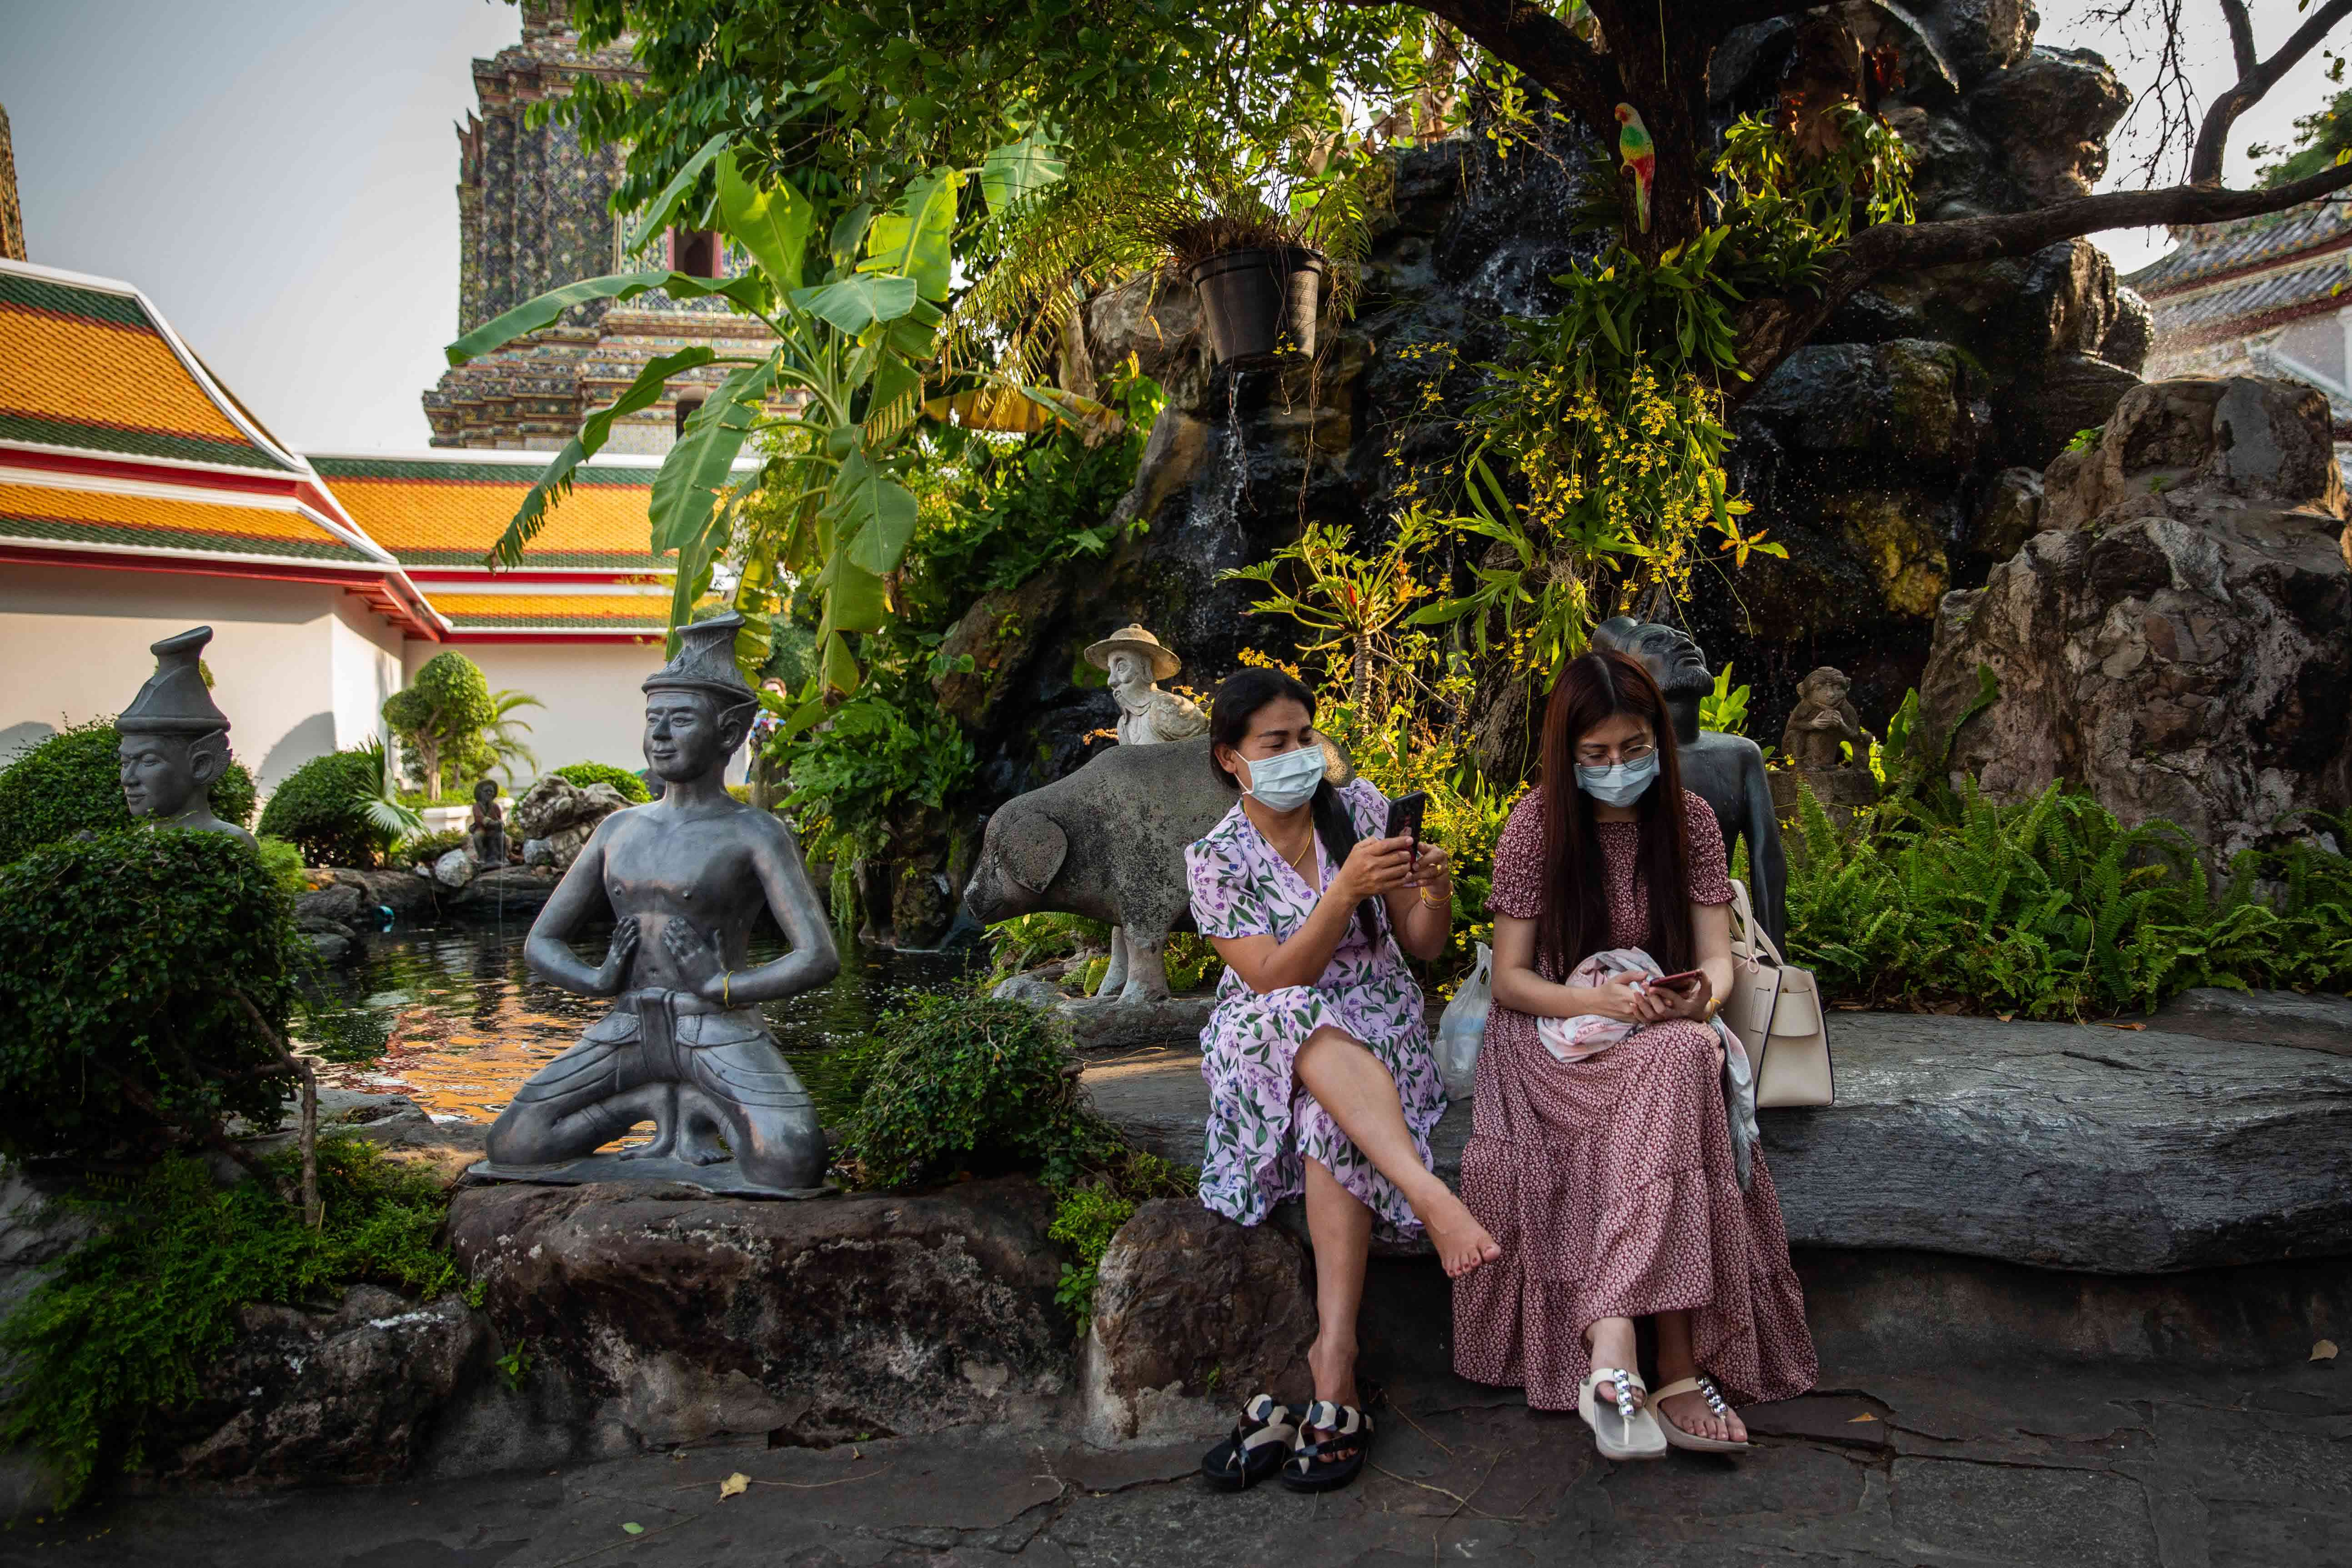 Concern In Thailand As The Wuhan Coronavirus Spreads